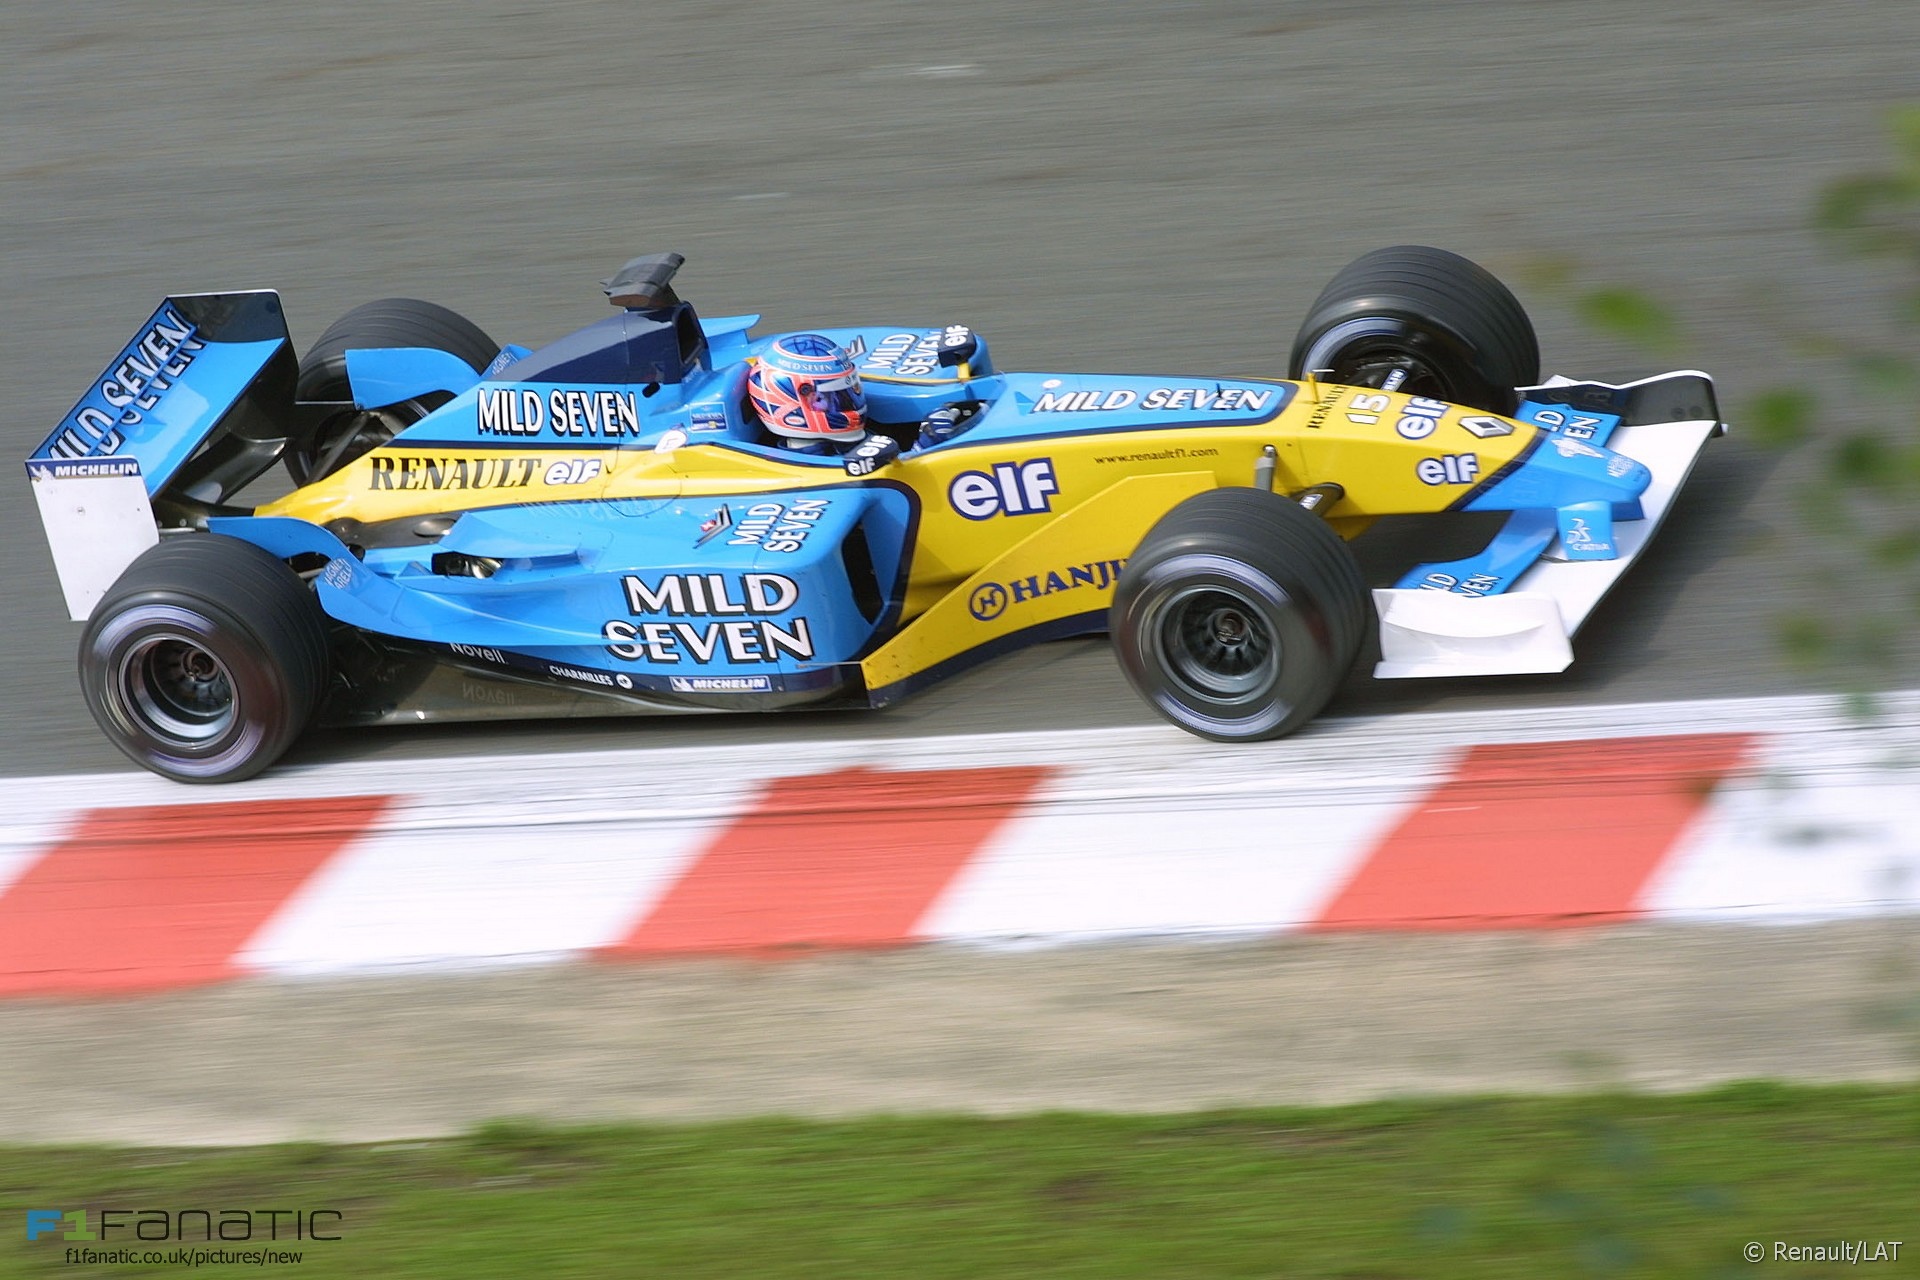 Jenson Button, Renault, Spa-Francorchamps, 2002